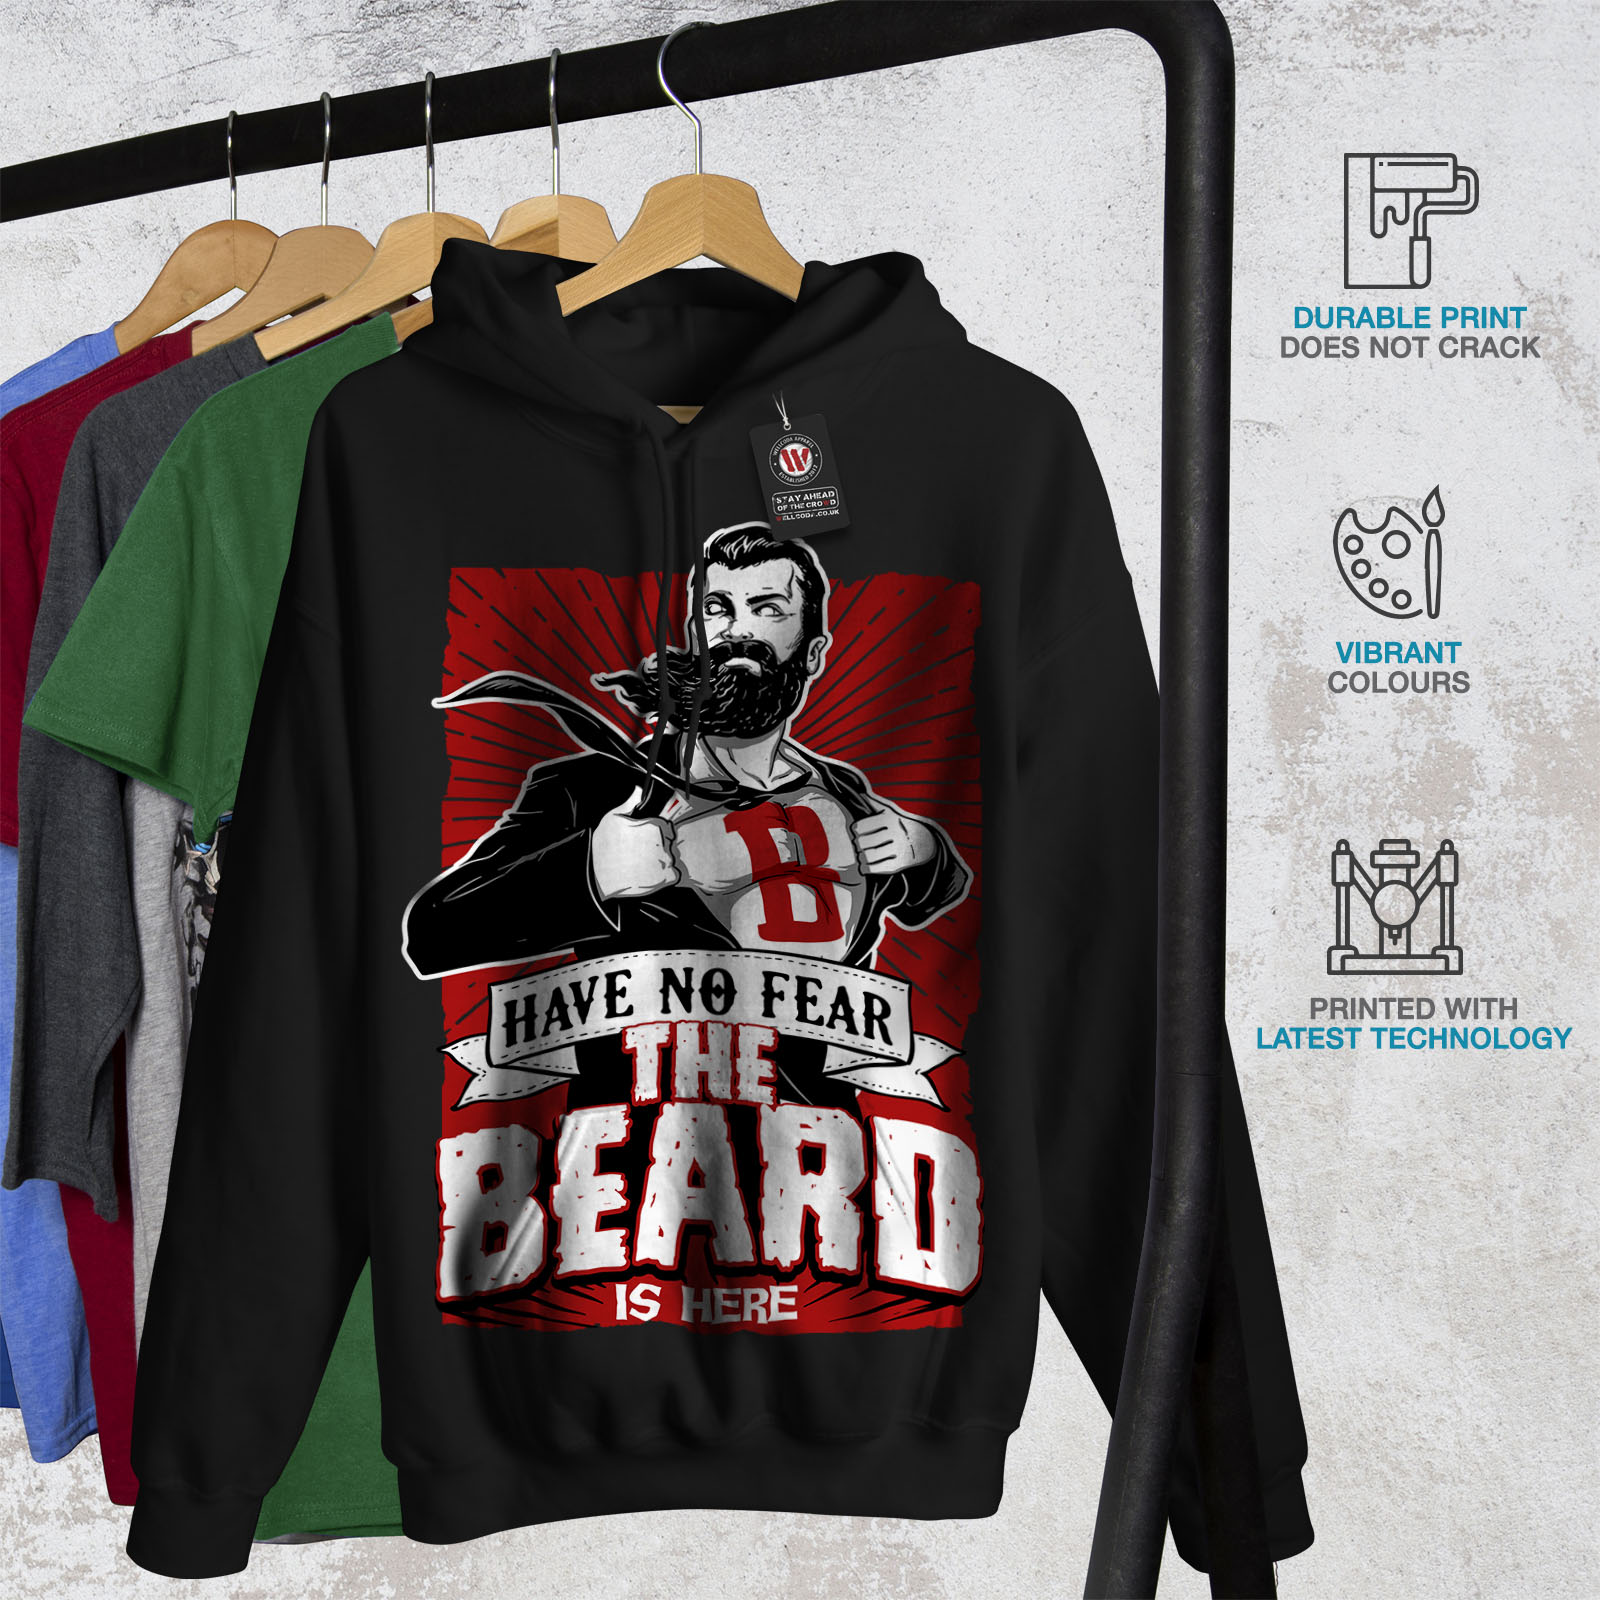 miniature 7 - Wellcoda The Beard Is Here Mens Hoodie, Have Casual Hooded Sweatshirt